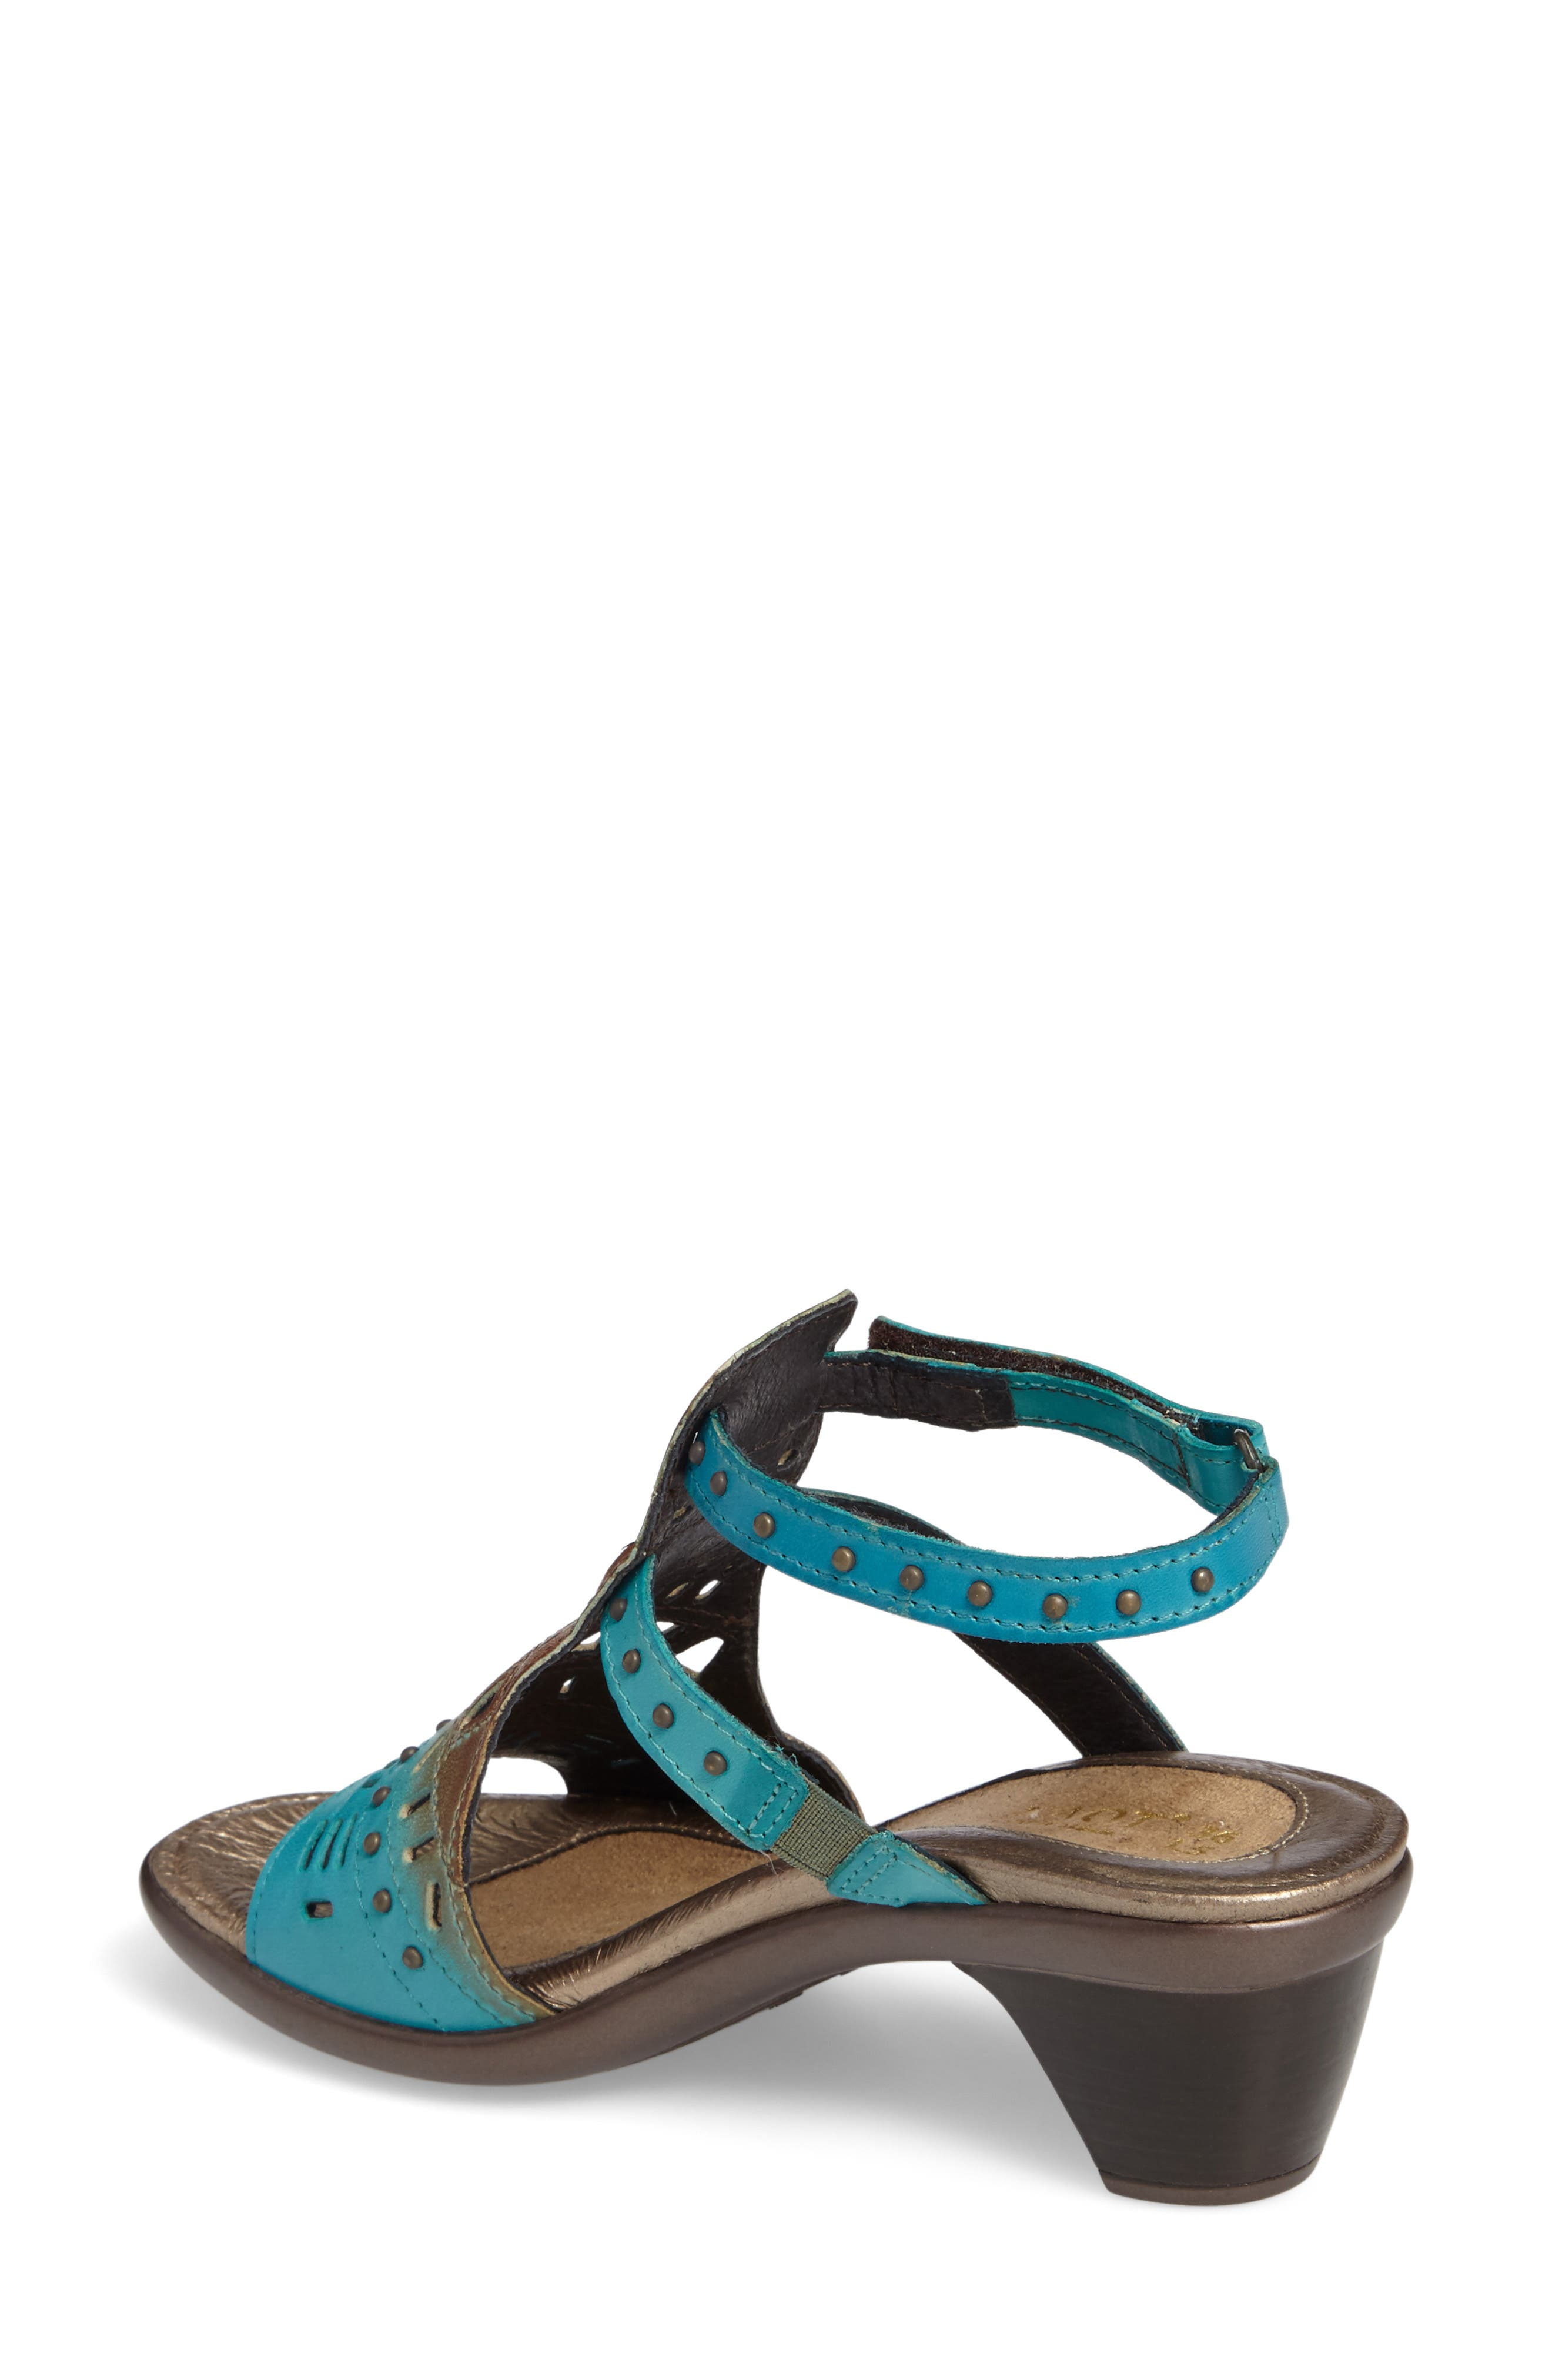 'Vogue' Sandal,                             Alternate thumbnail 2, color,                             TEAL BROWN LEATHER